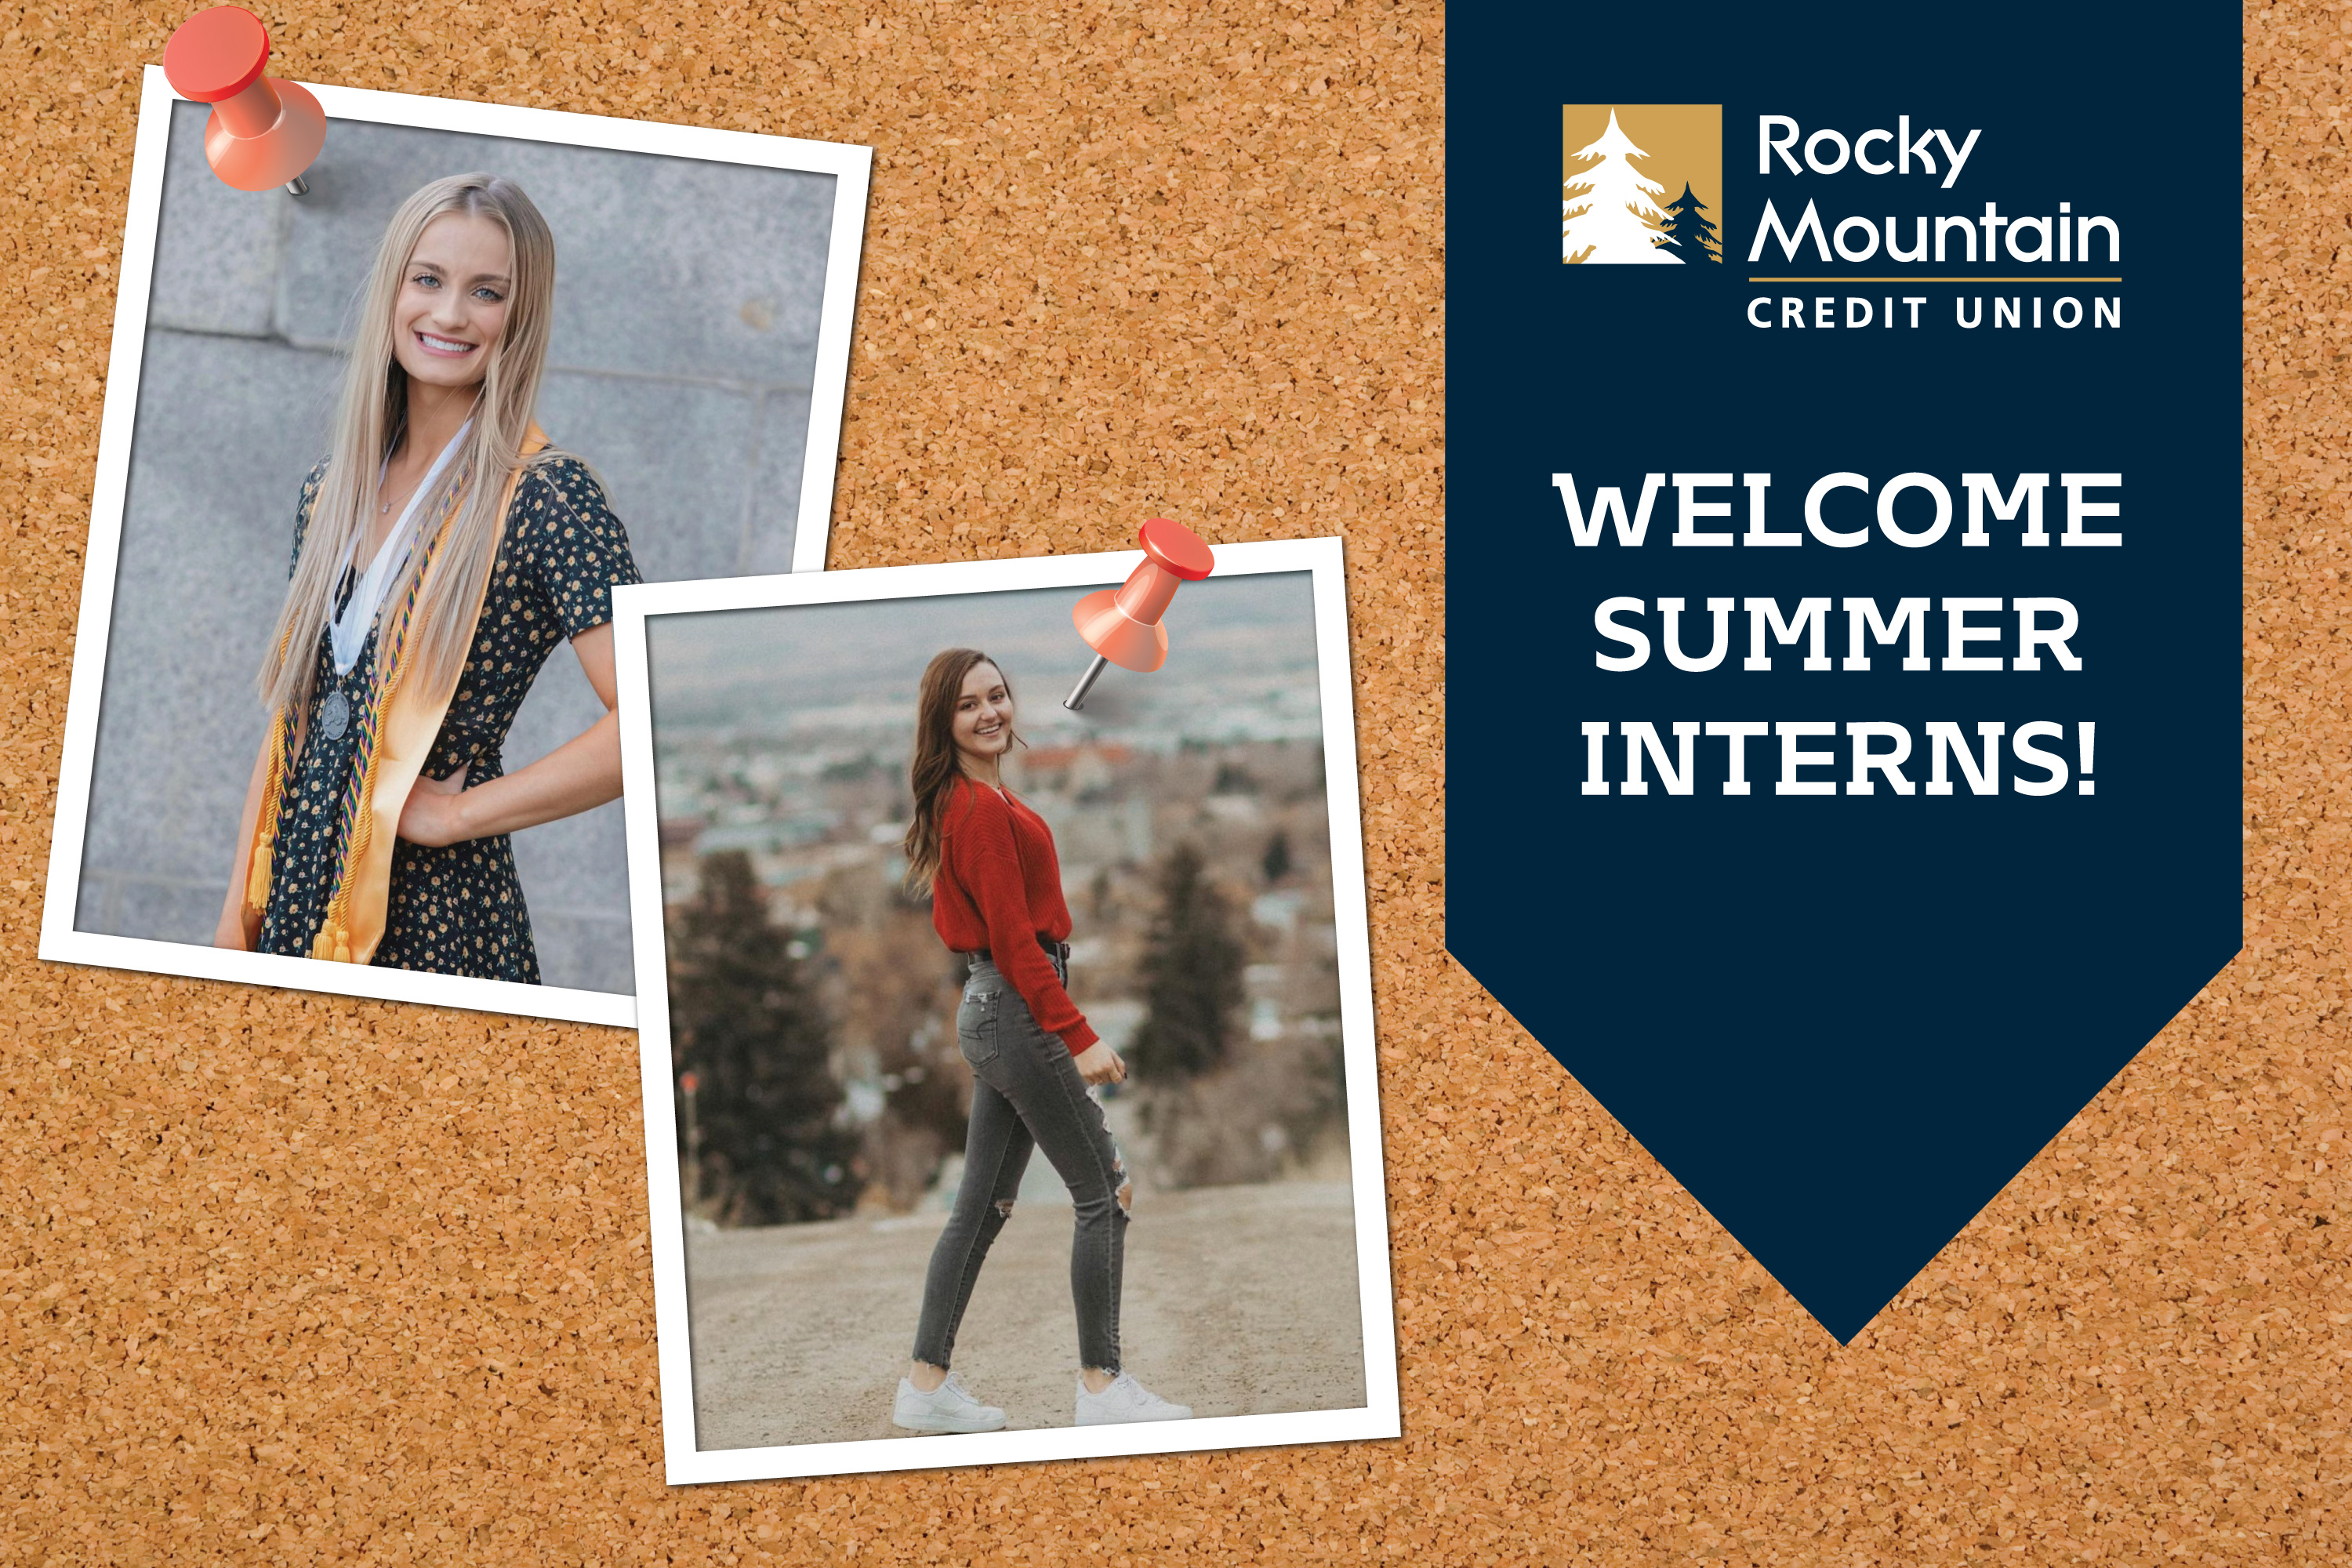 Welcome to Our RMCU Summer Interns of 2021